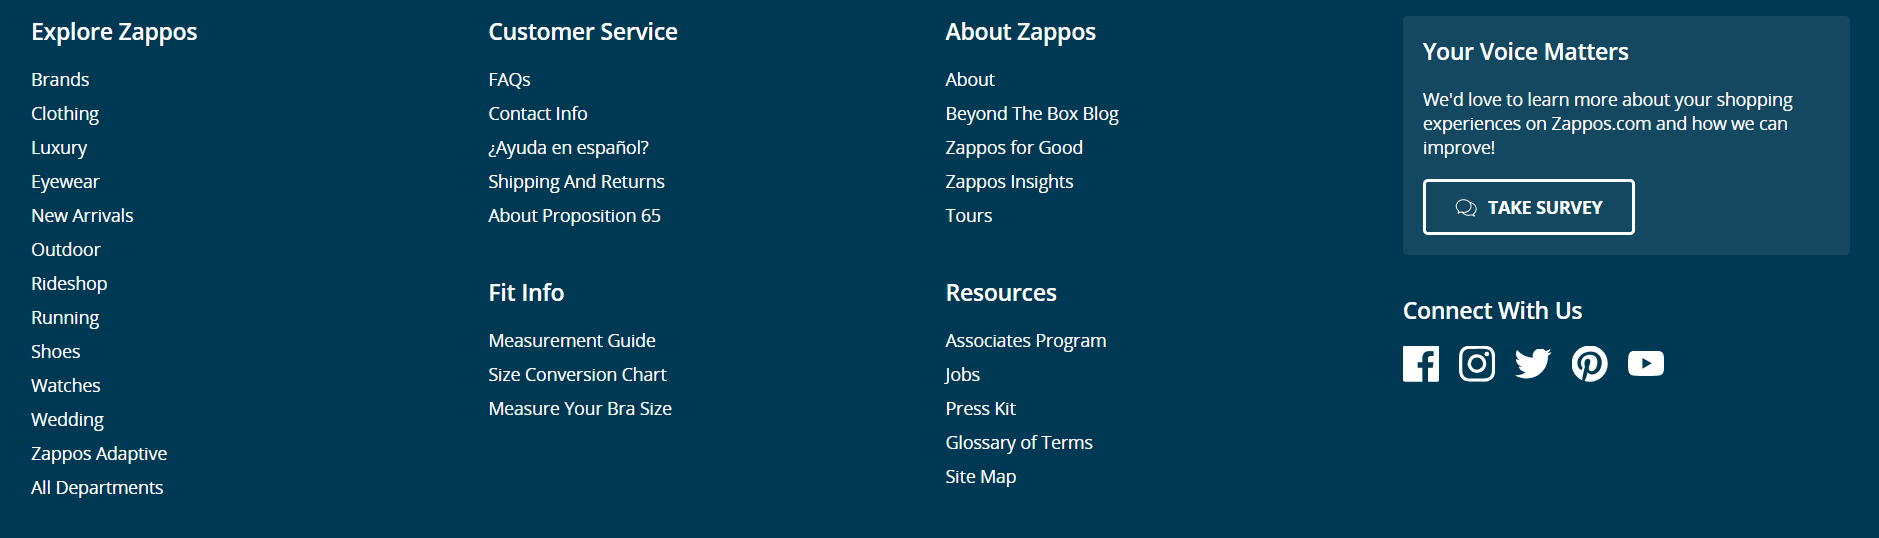 website-navigation-zappos-footer